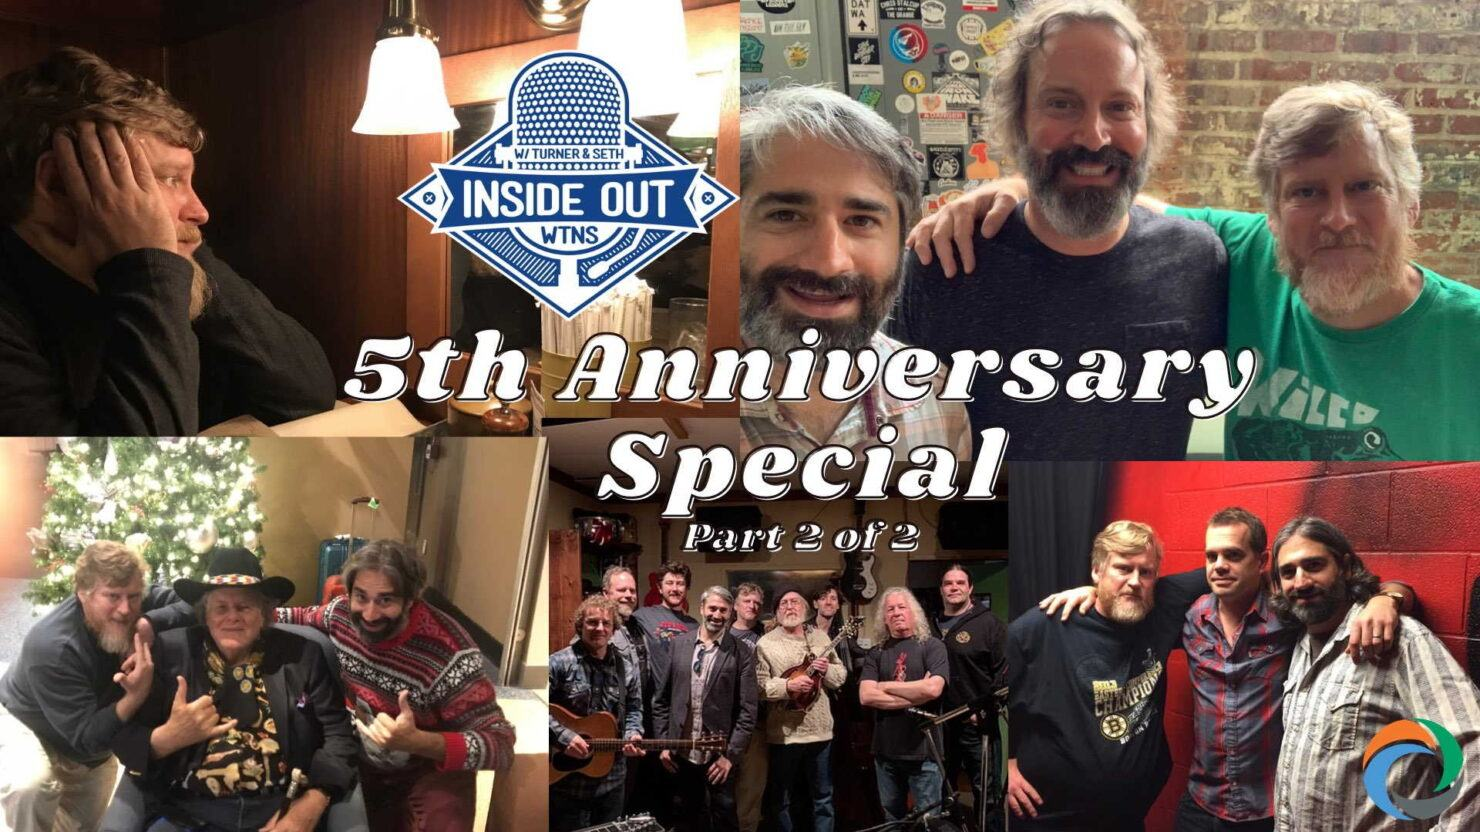 inside out turner seth 5th anniversary special part 2 1480x832.